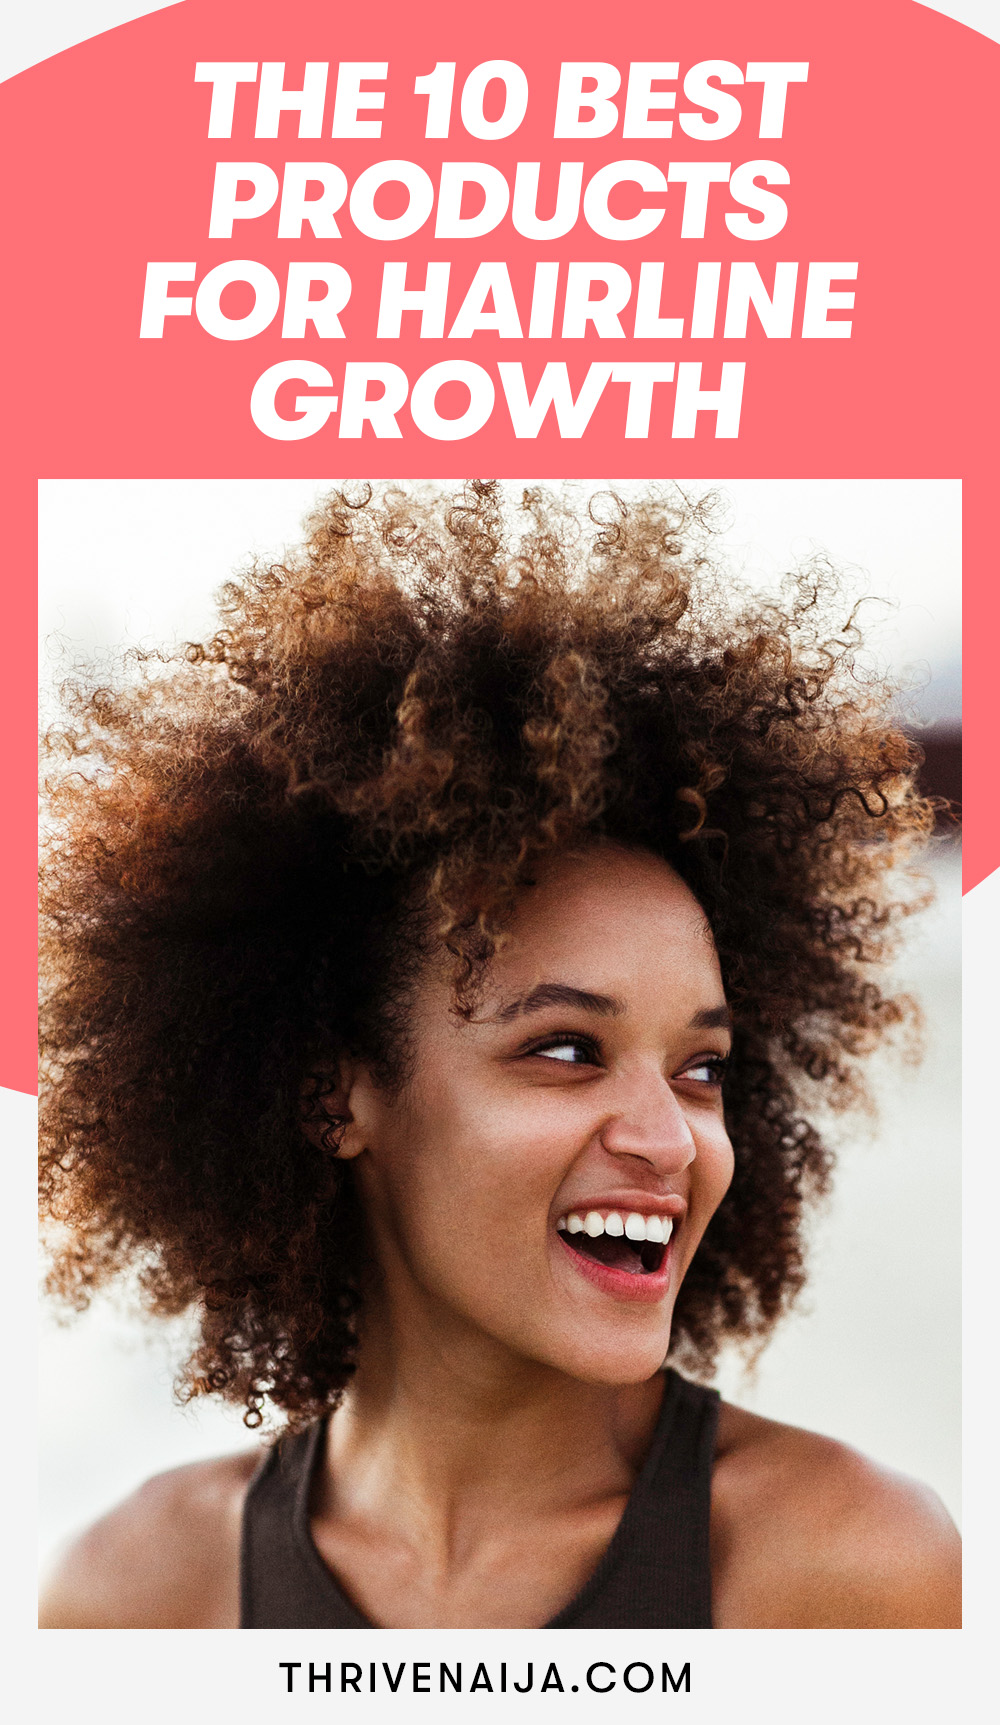 The 10 Best Products for Hairline Growth 2021